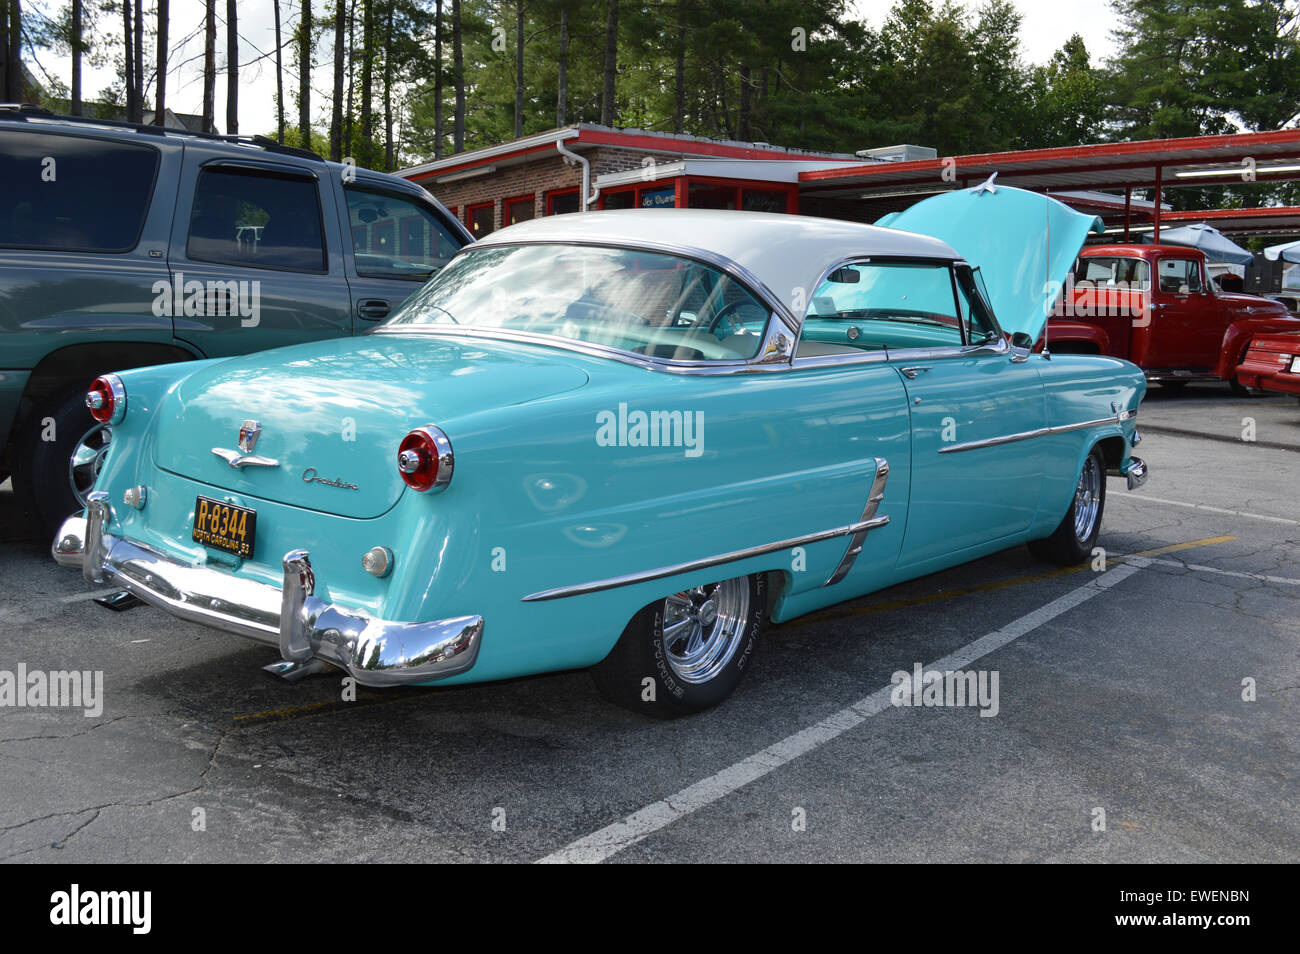 A 1953 Ford two door hardtop. - Stock Image